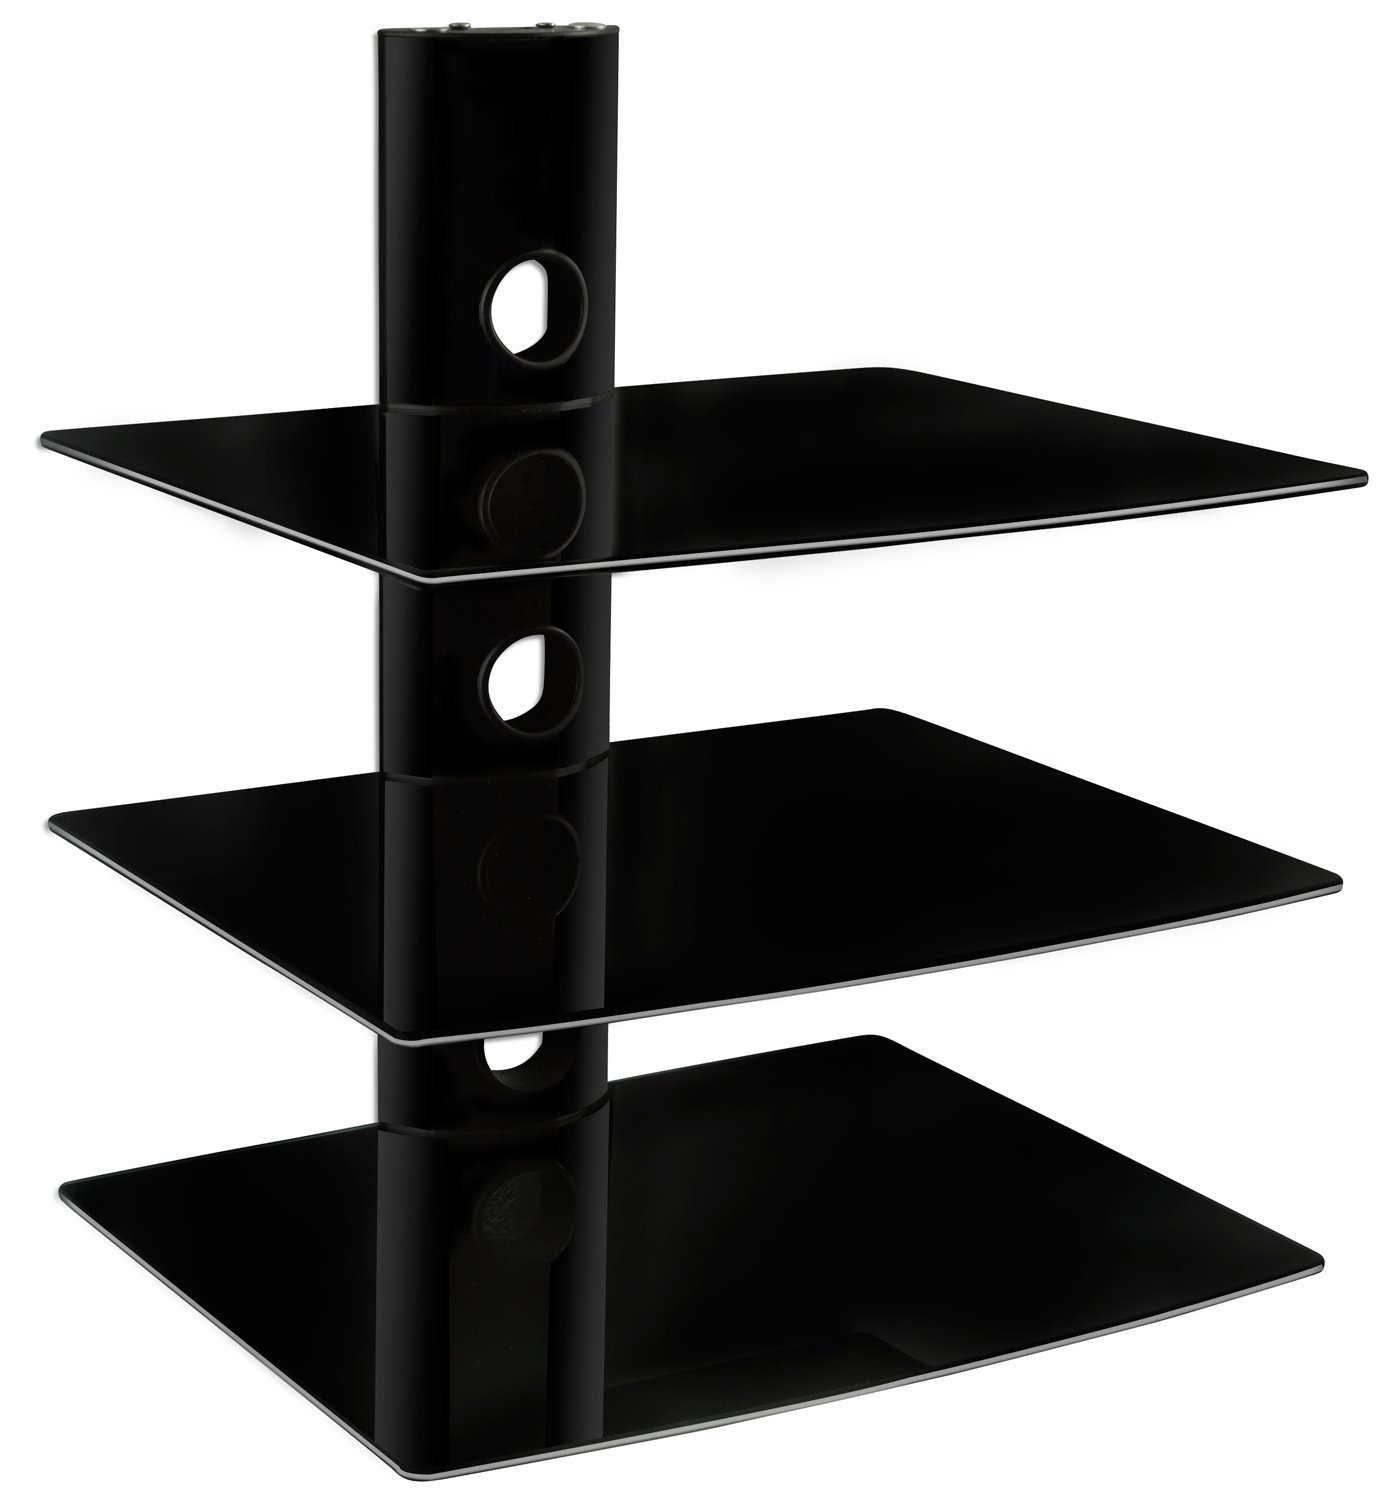 Amazon Mount It Mi 803 Floating Wall Mounted Shelf Bracket Intended For Wall Mounted Black Glass Shelves (View 7 of 15)